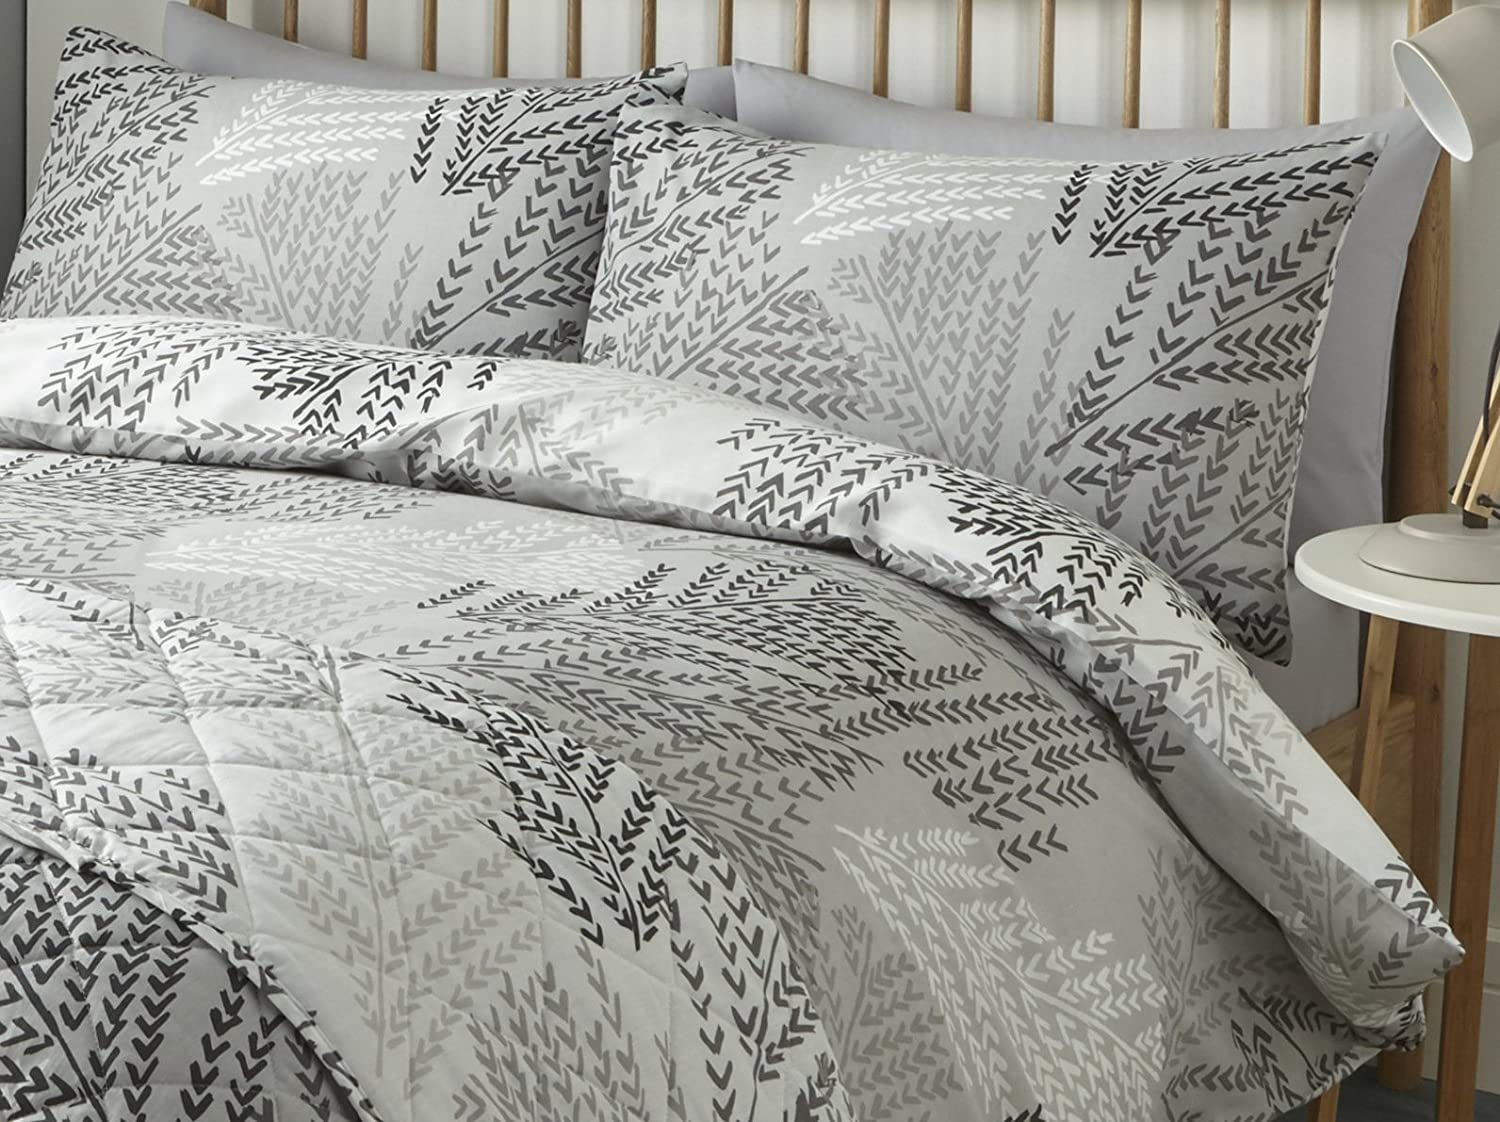 Fusion Alena Reversible Quilted Bedspread Set, Teal, 200 x 150 Cm J Rosenthal & Son AEETL6HUTU